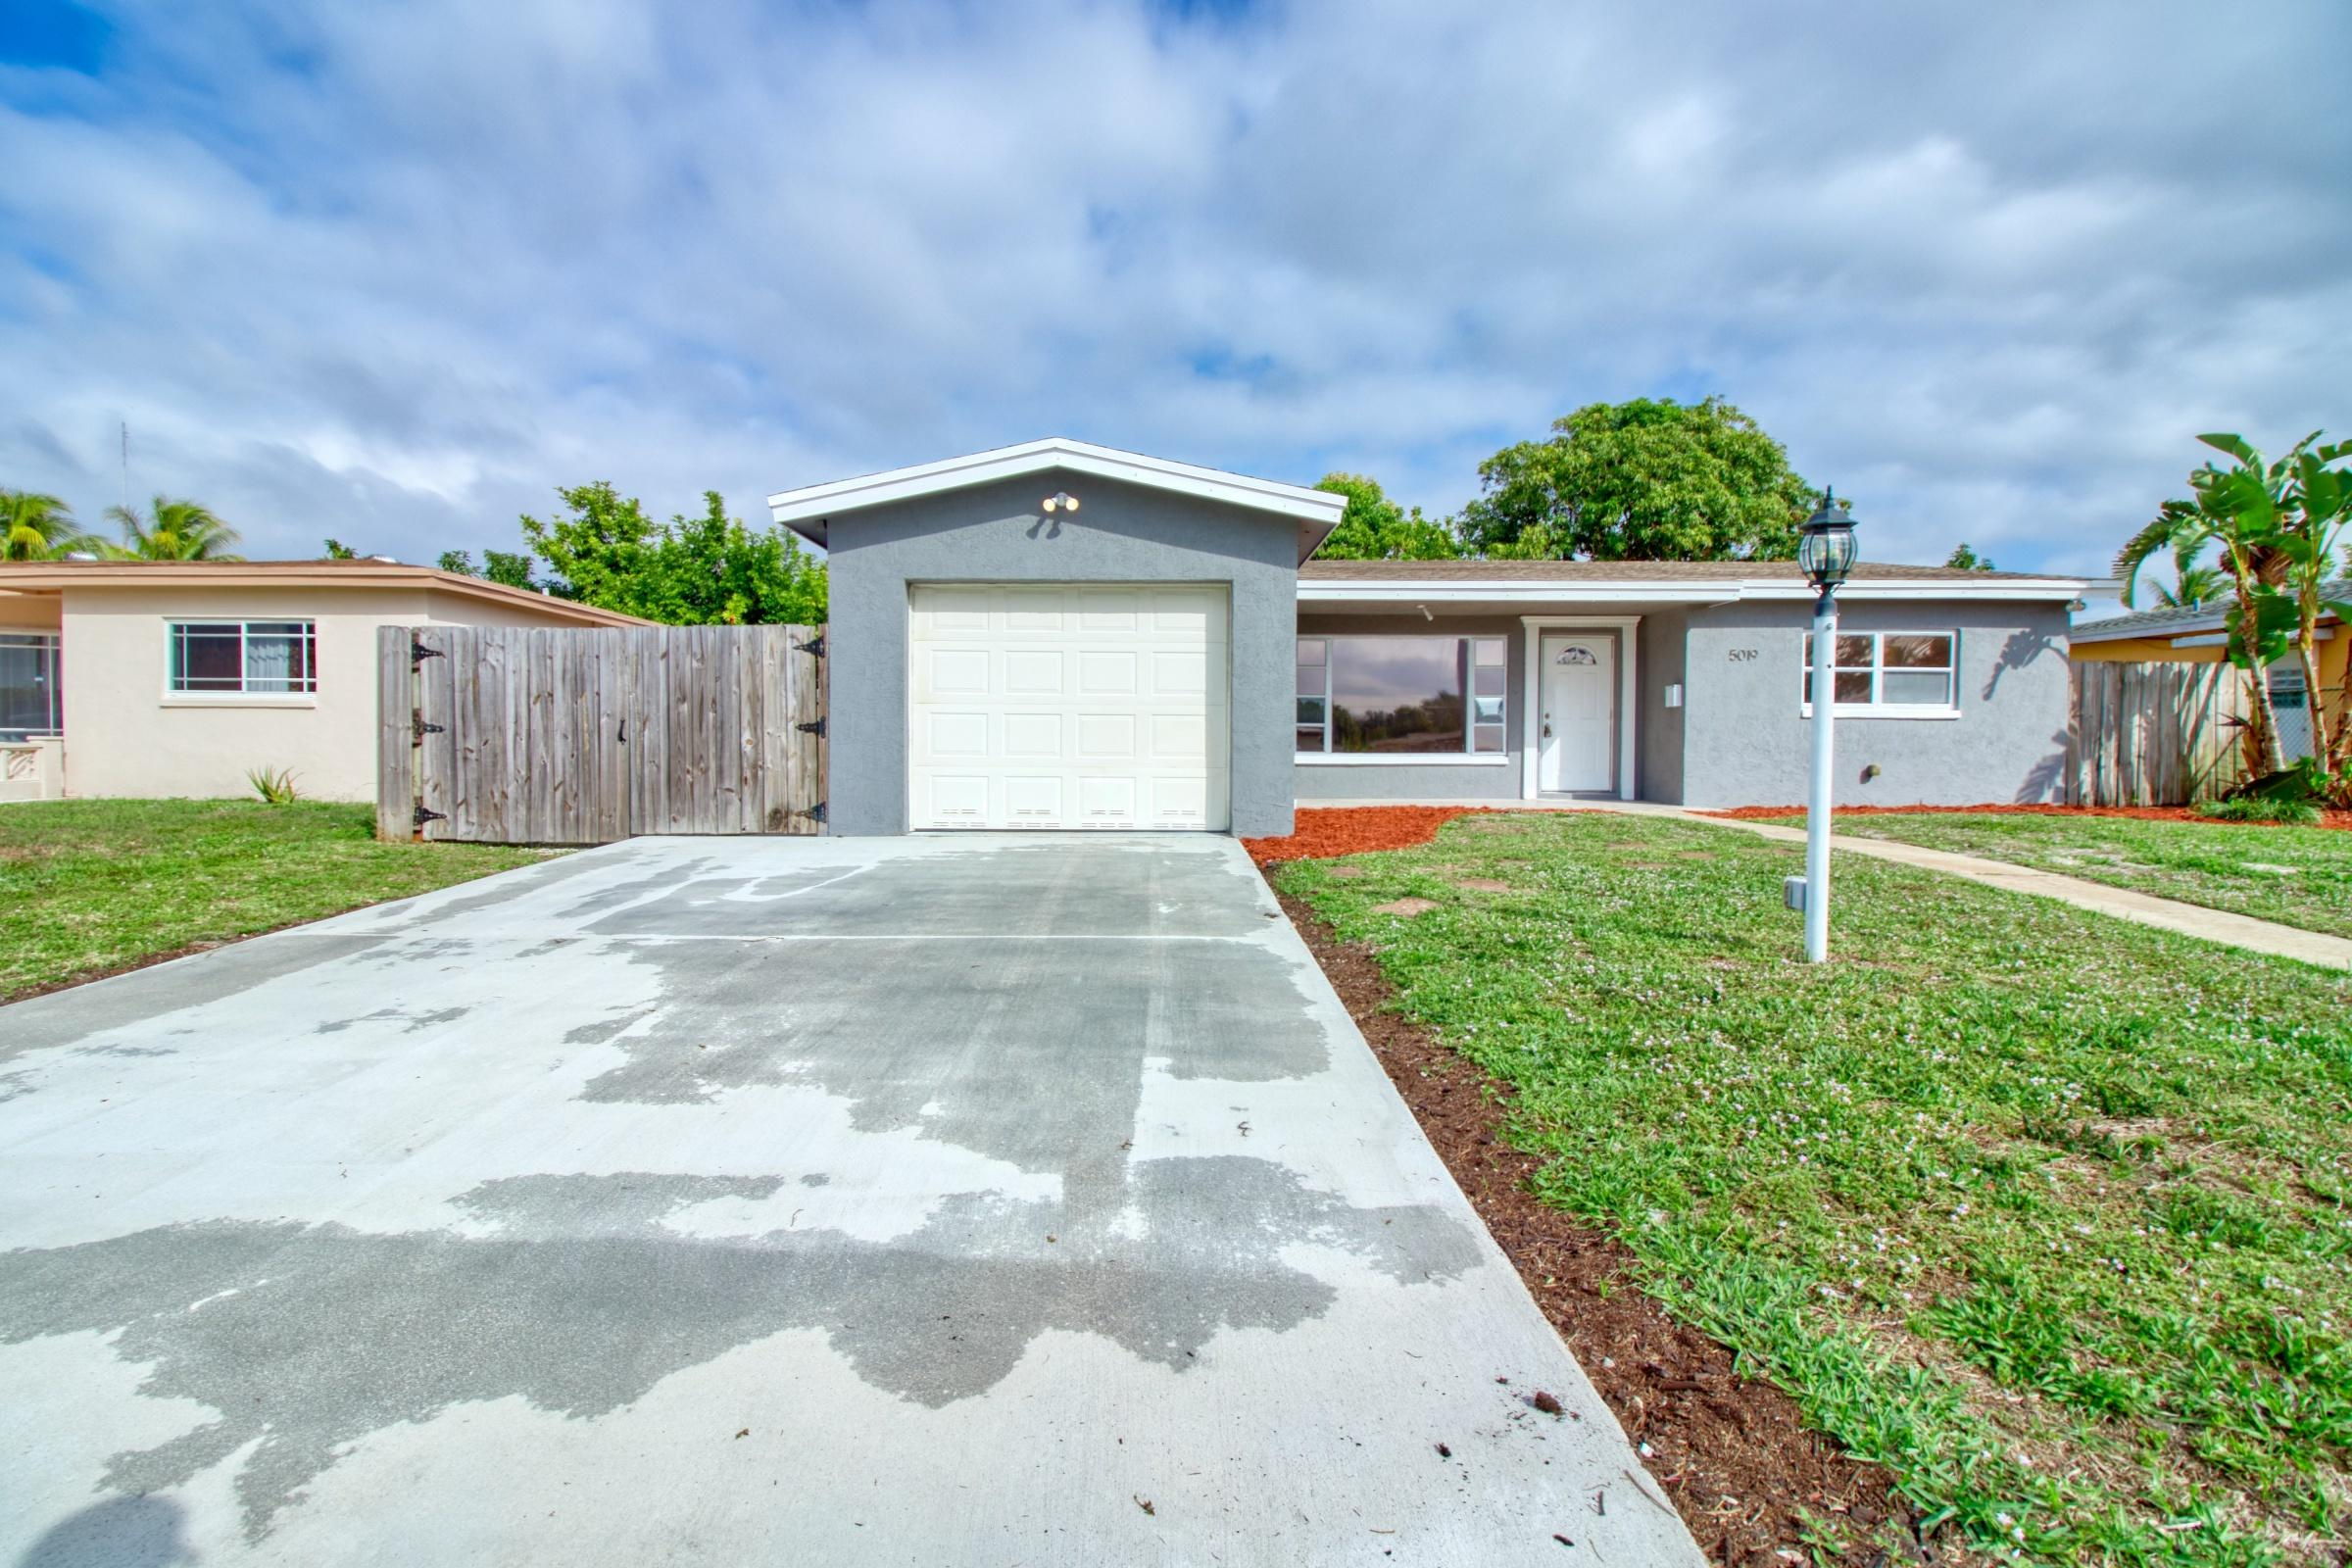 5019 Nw 41st Court, Lauderdale Lakes, FL 33319